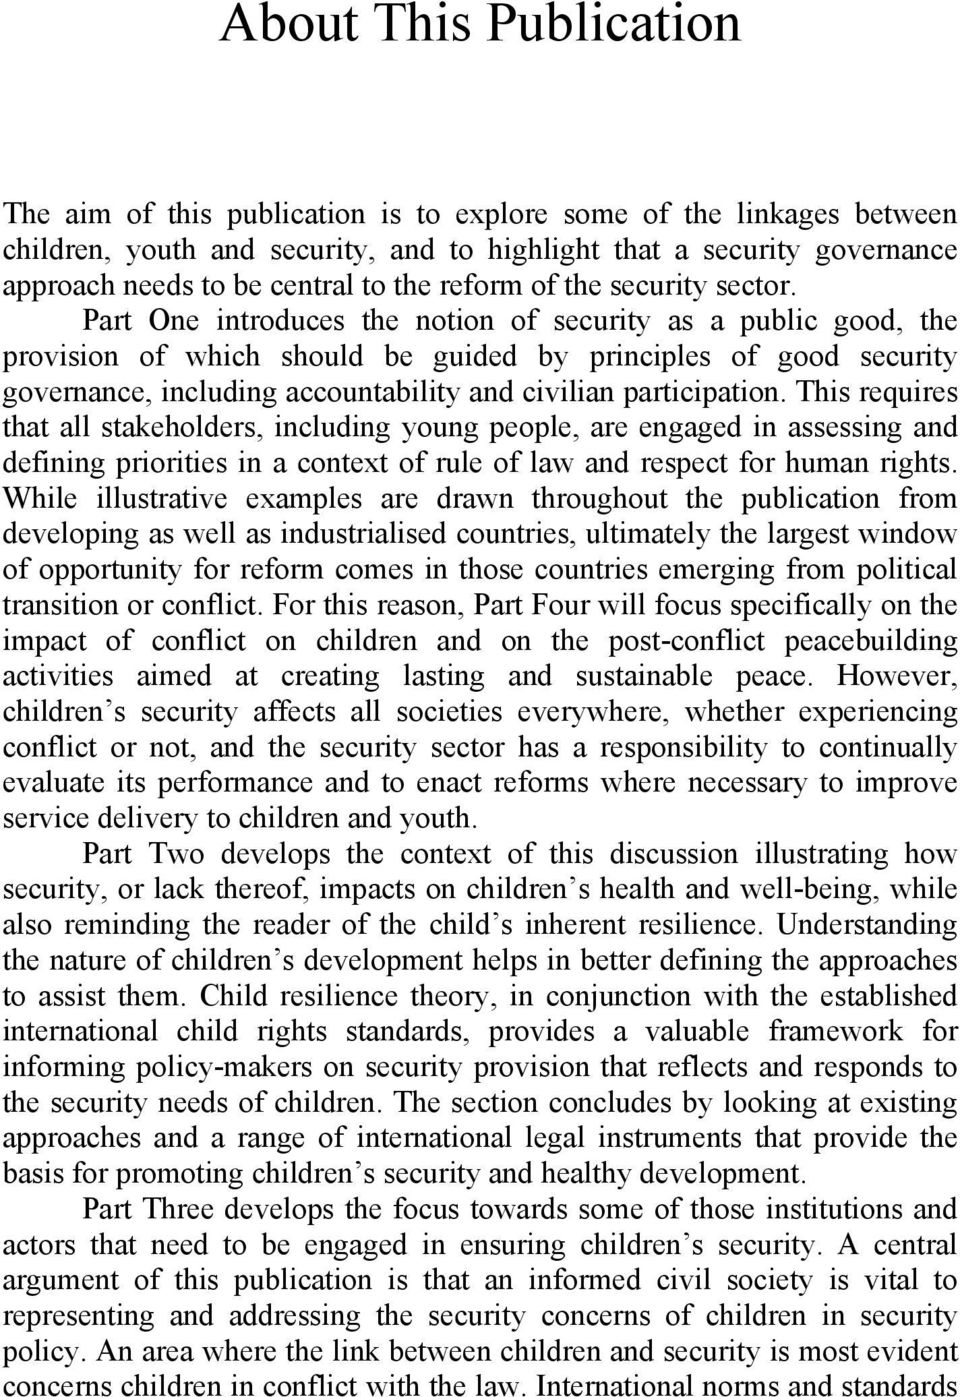 Part One introduces the notion of security as a public good, the provision of which should be guided by principles of good security governance, including accountability and civilian participation.